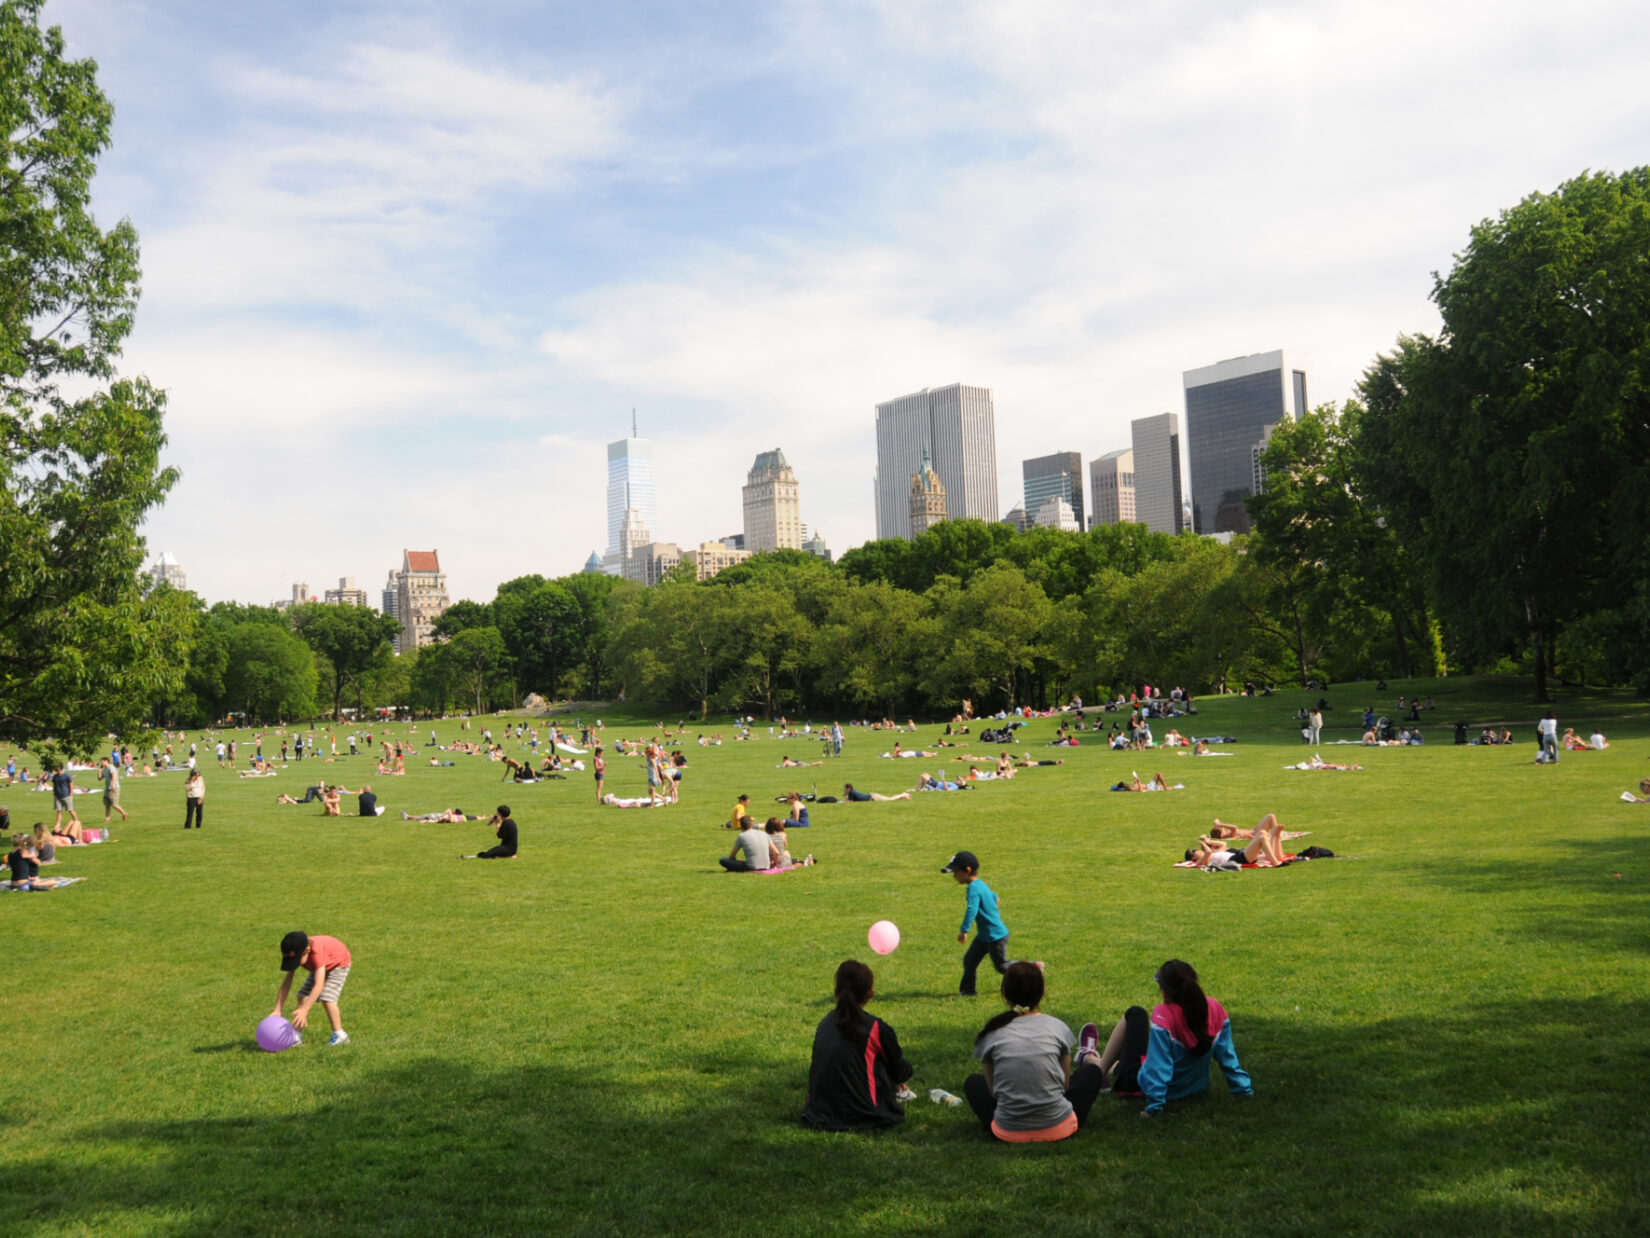 Sheep Meadow Central Park credit the Central Park Conservancy